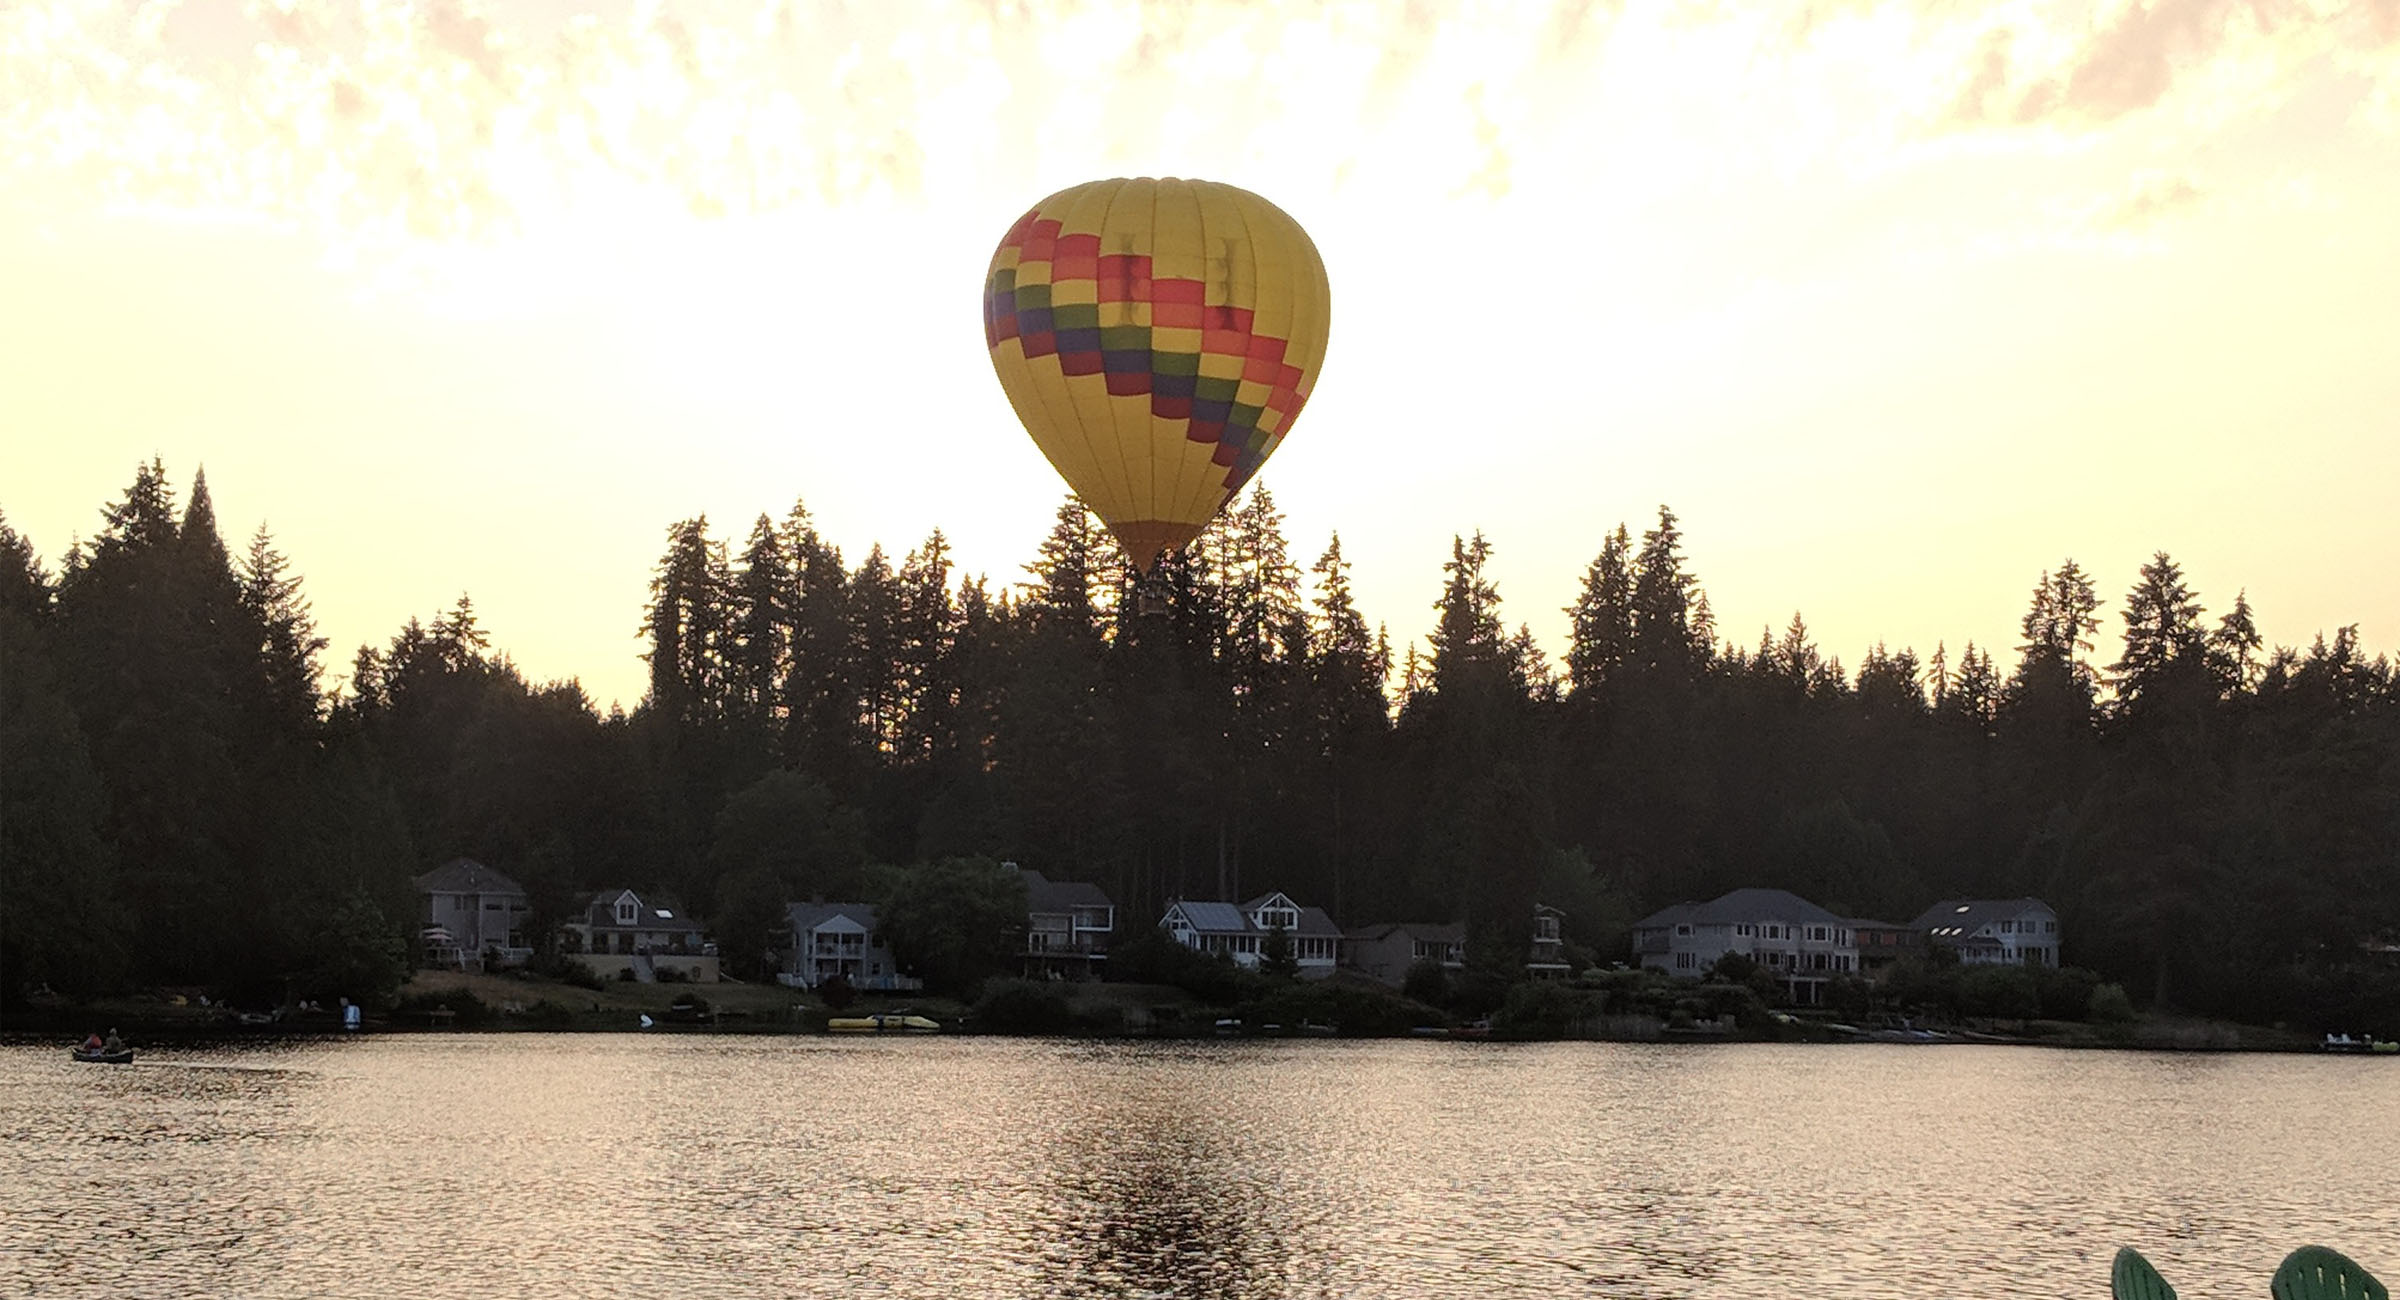 Balloon on Lake